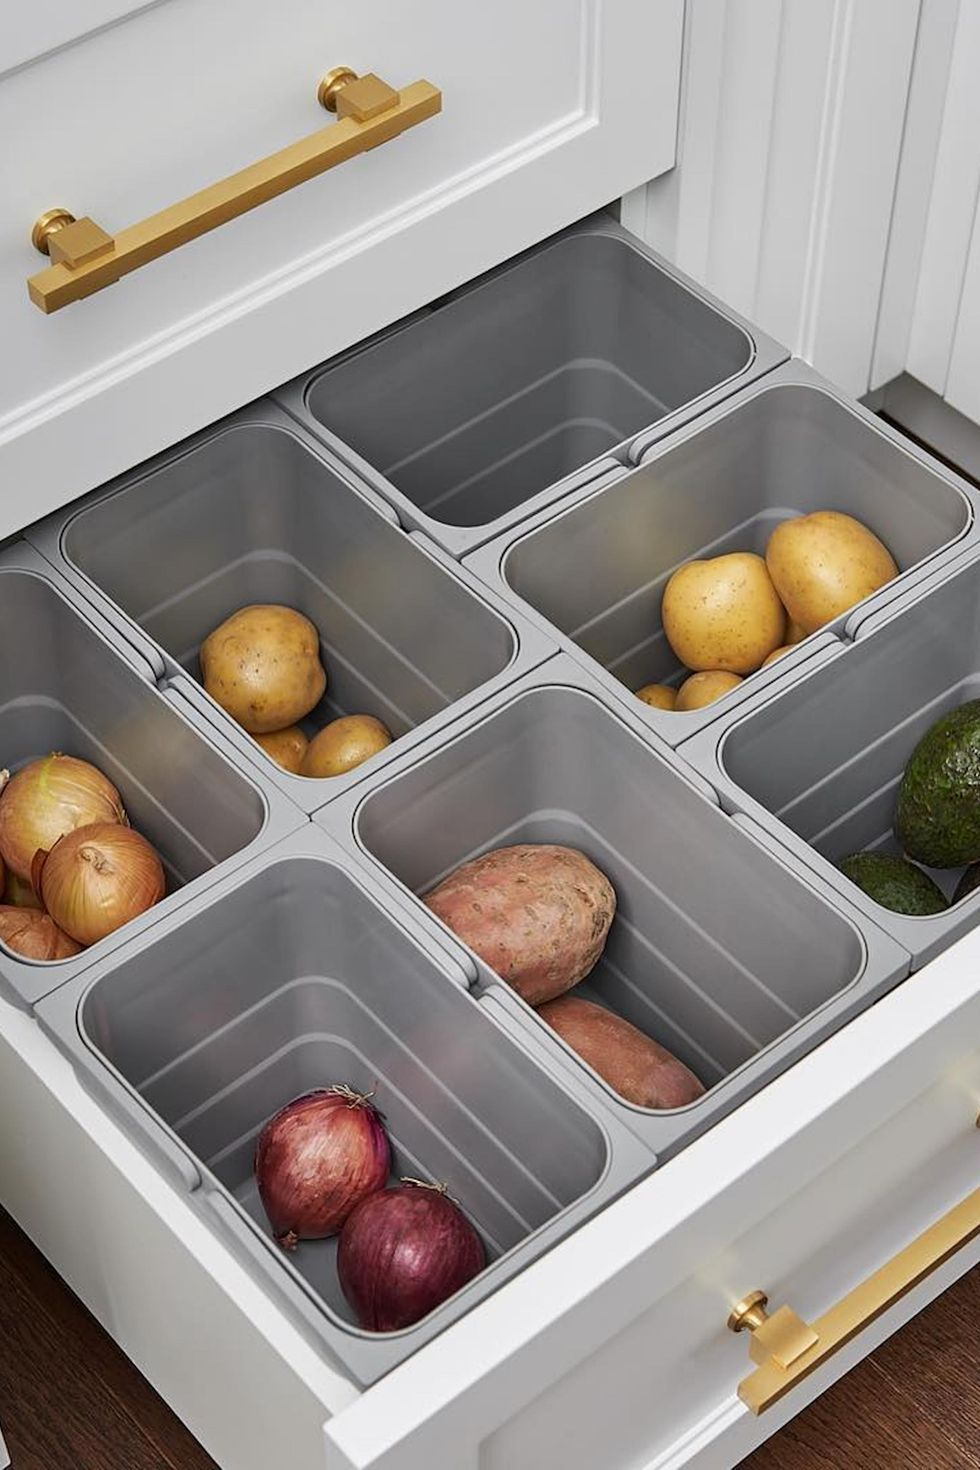 A Produce Drawer Is the Most Genius Way to Cut Down on Kitchen Countertop Clutter